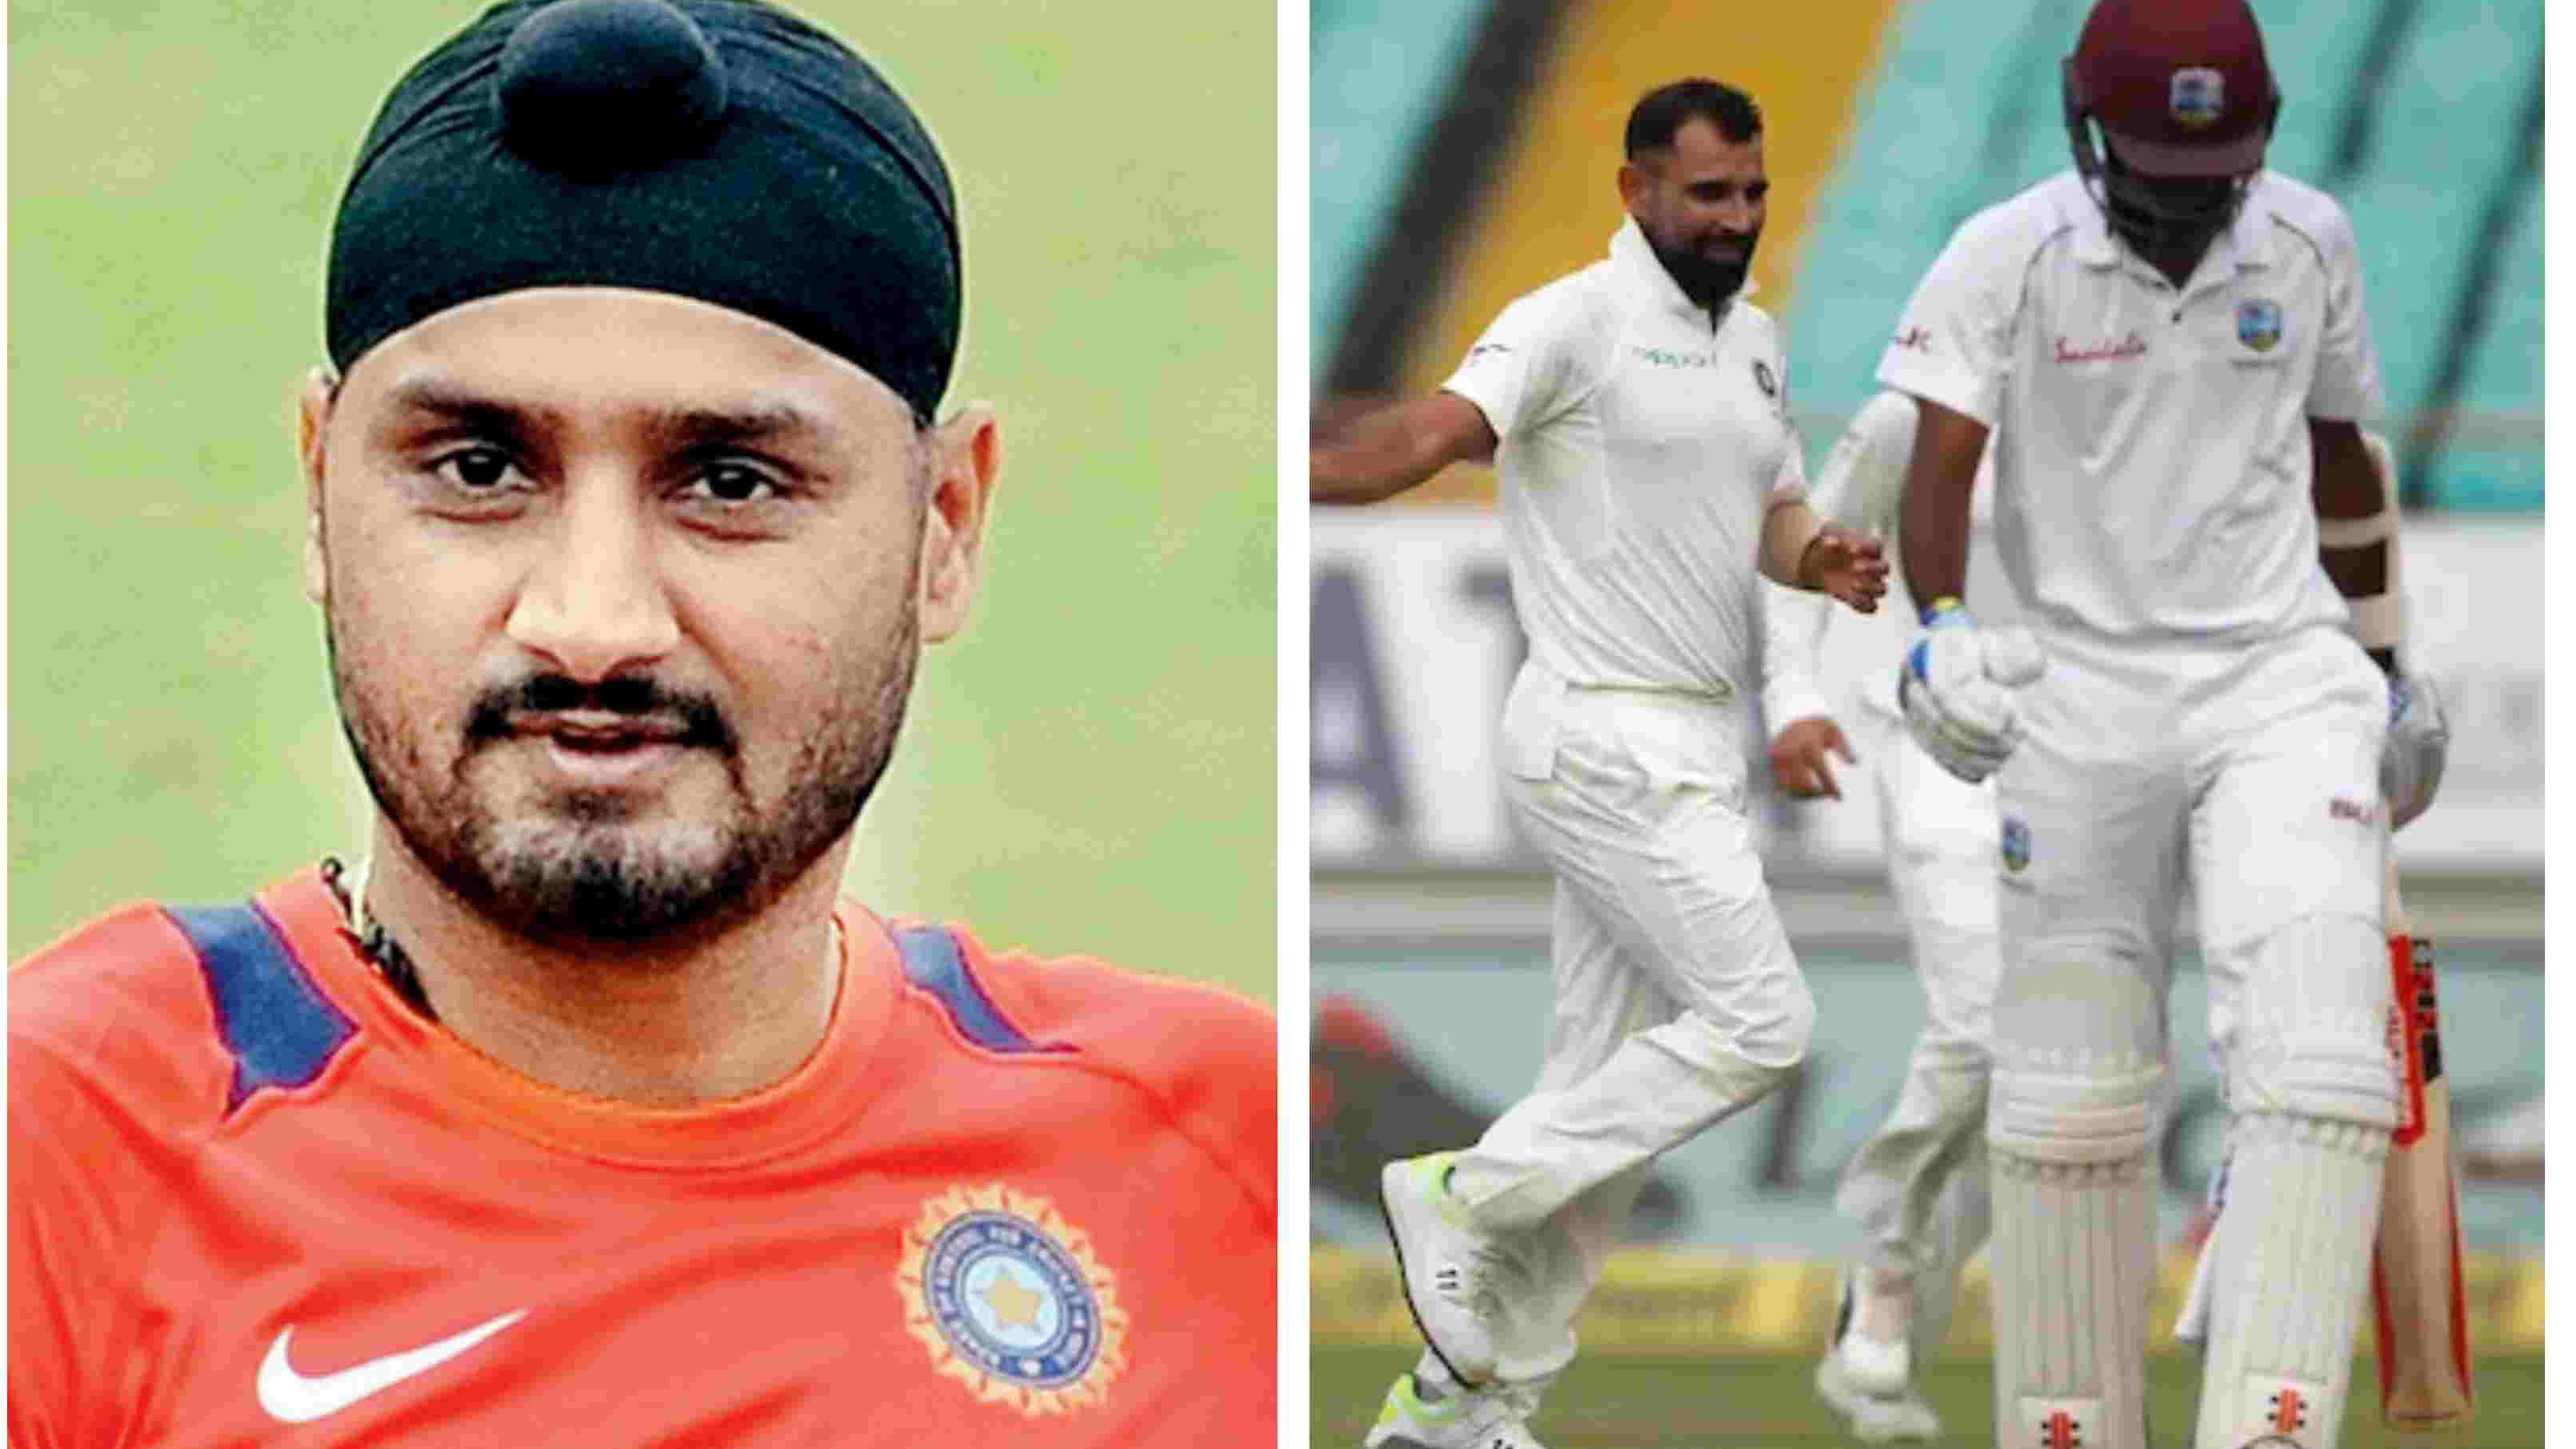 IND v WI 2018: Twitterati slam Harbhajan Singh for his distasteful comment on West Indies team